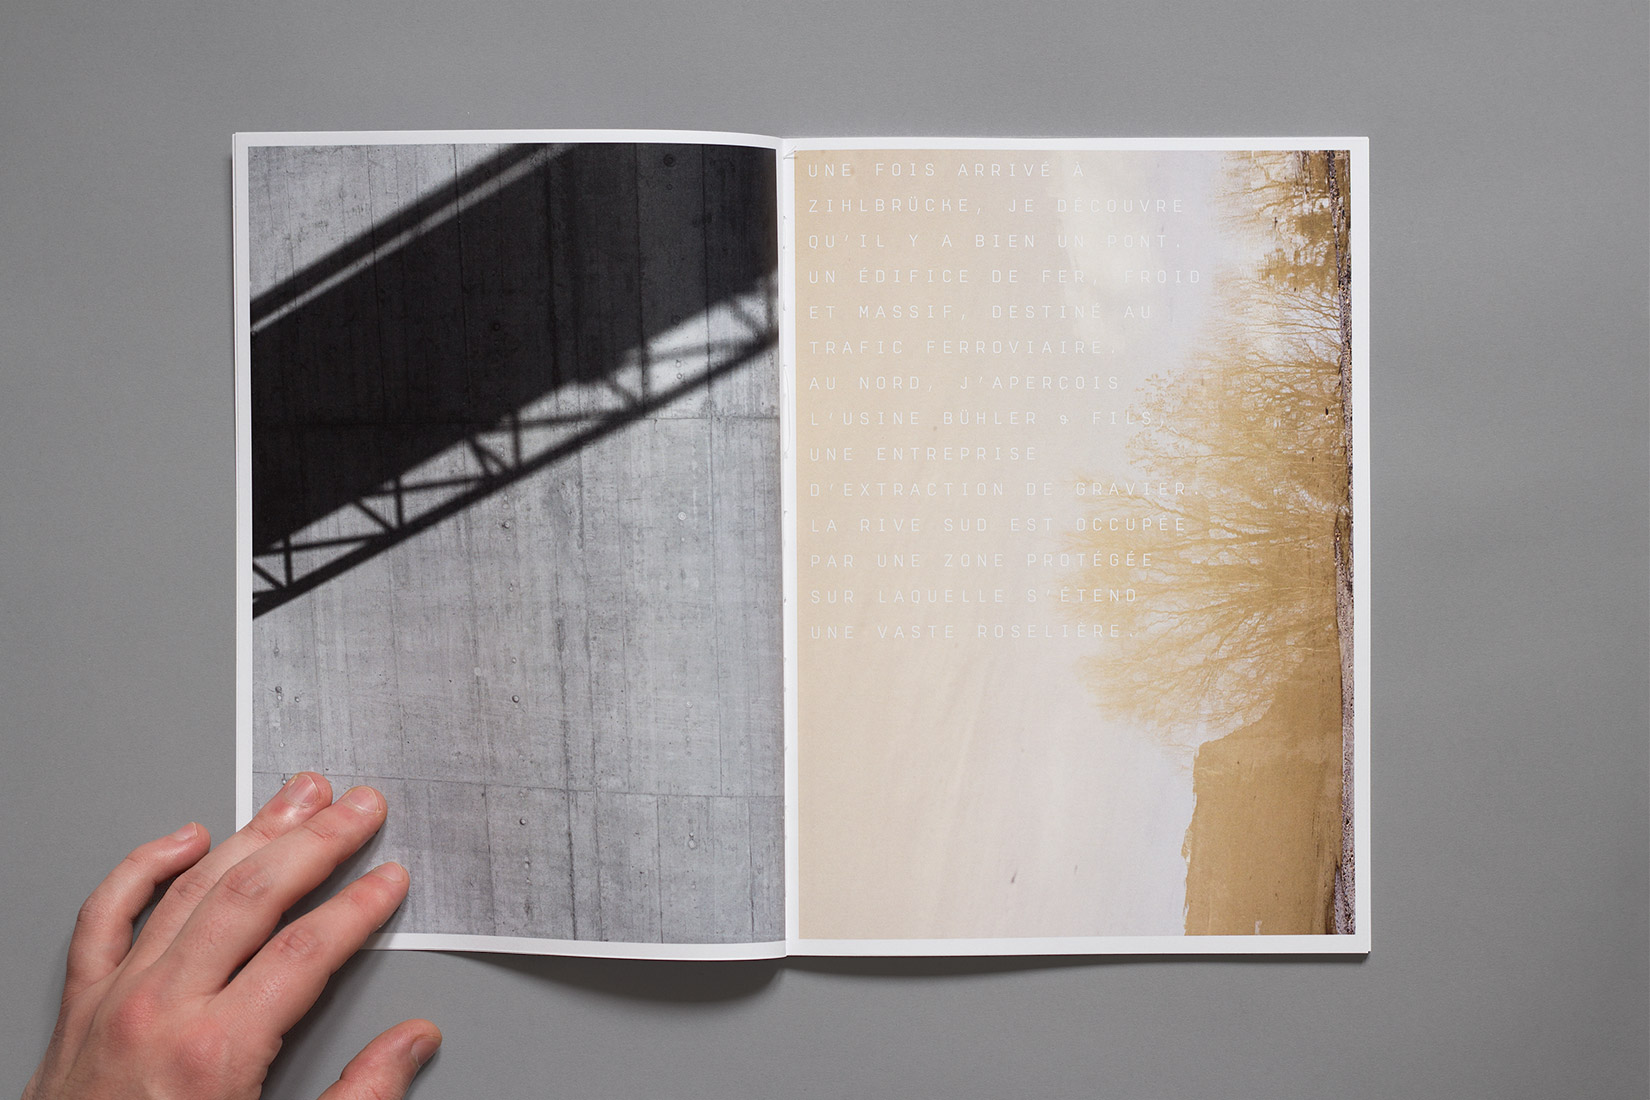 Zihlbrücke, diploma, book, graphic design, shadow, reflection, branchs, trees